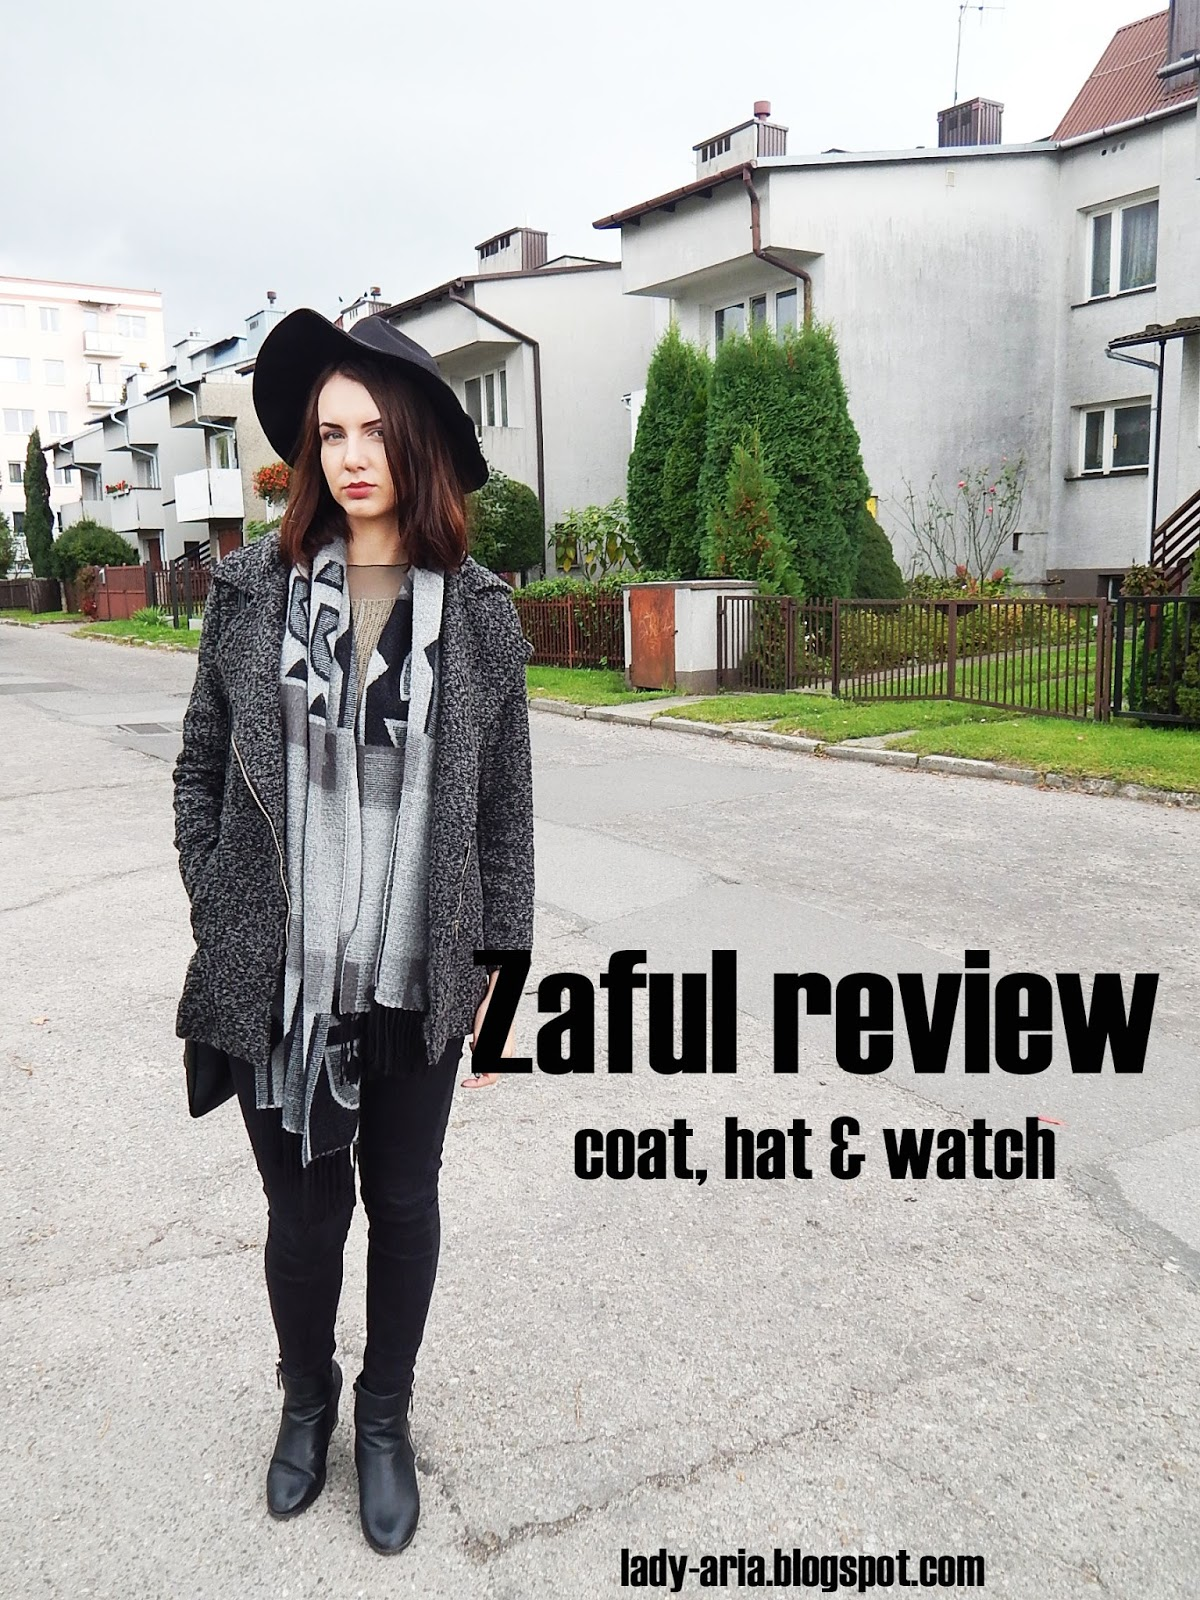 Zaful review - coat, hat & watch